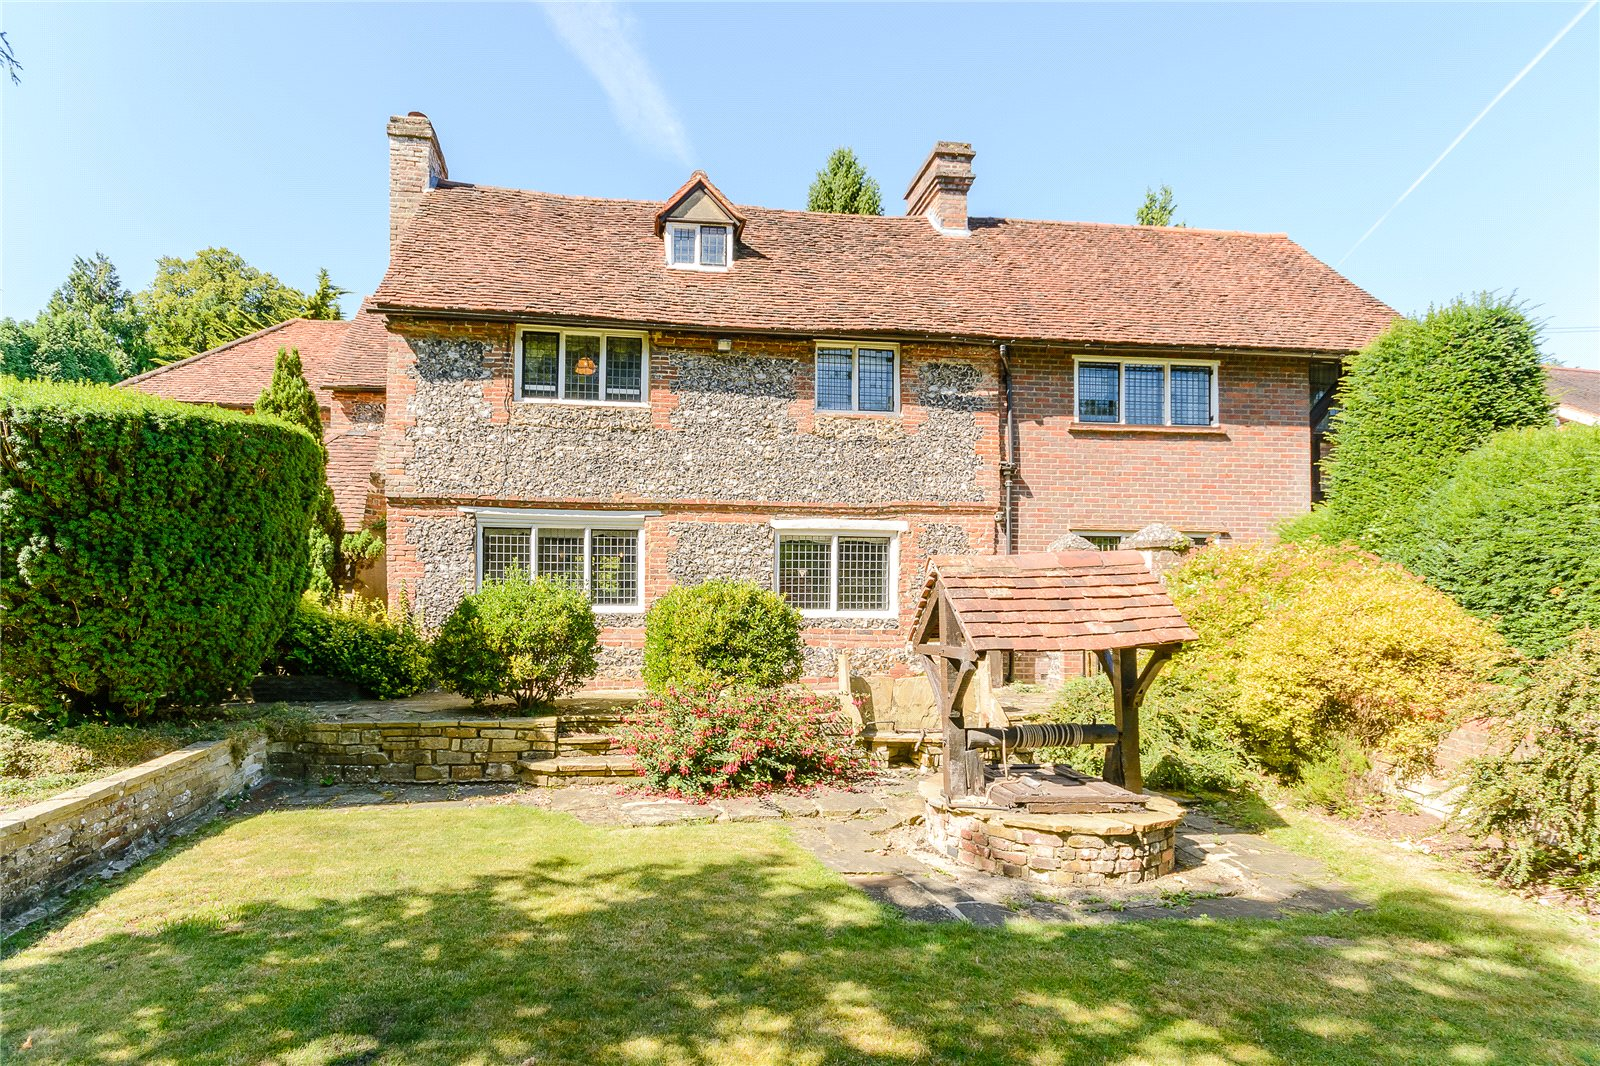 Additional photo for property listing at Claydon Lane, Chalfont St Peter, Gerrards Cross, Buckinghamshire, SL9 Gerrards Cross, Inghilterra